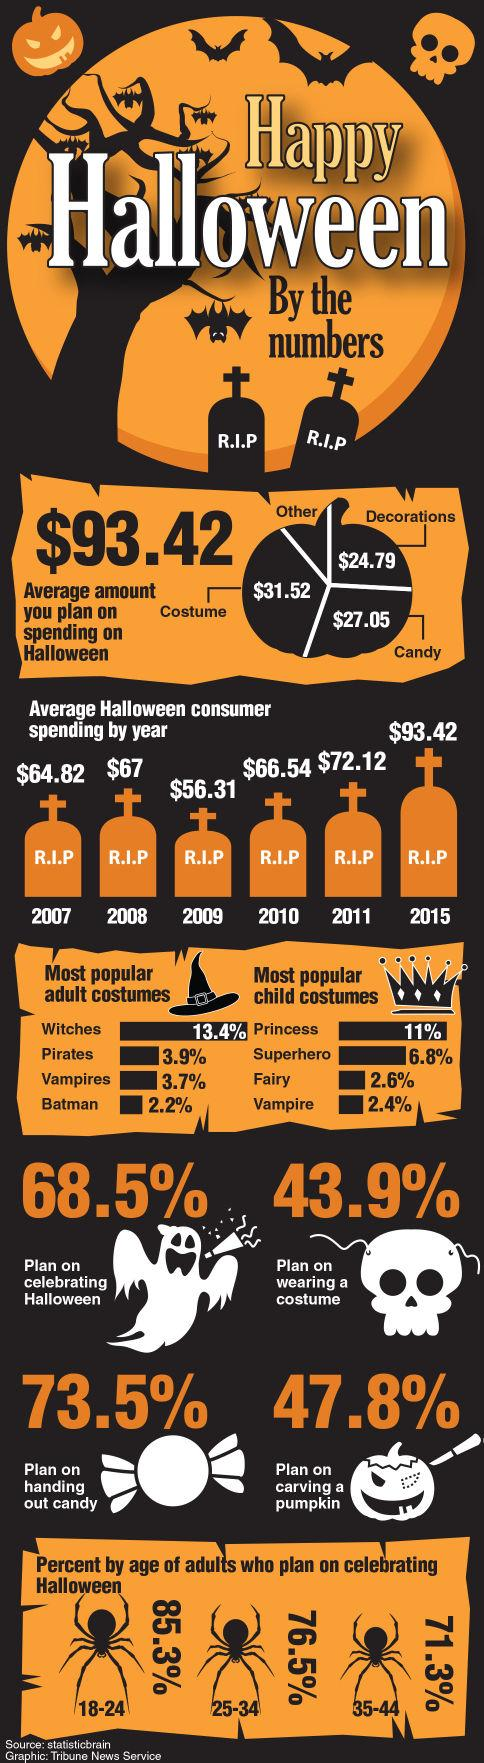 Infographic on Halloween by the numbers.